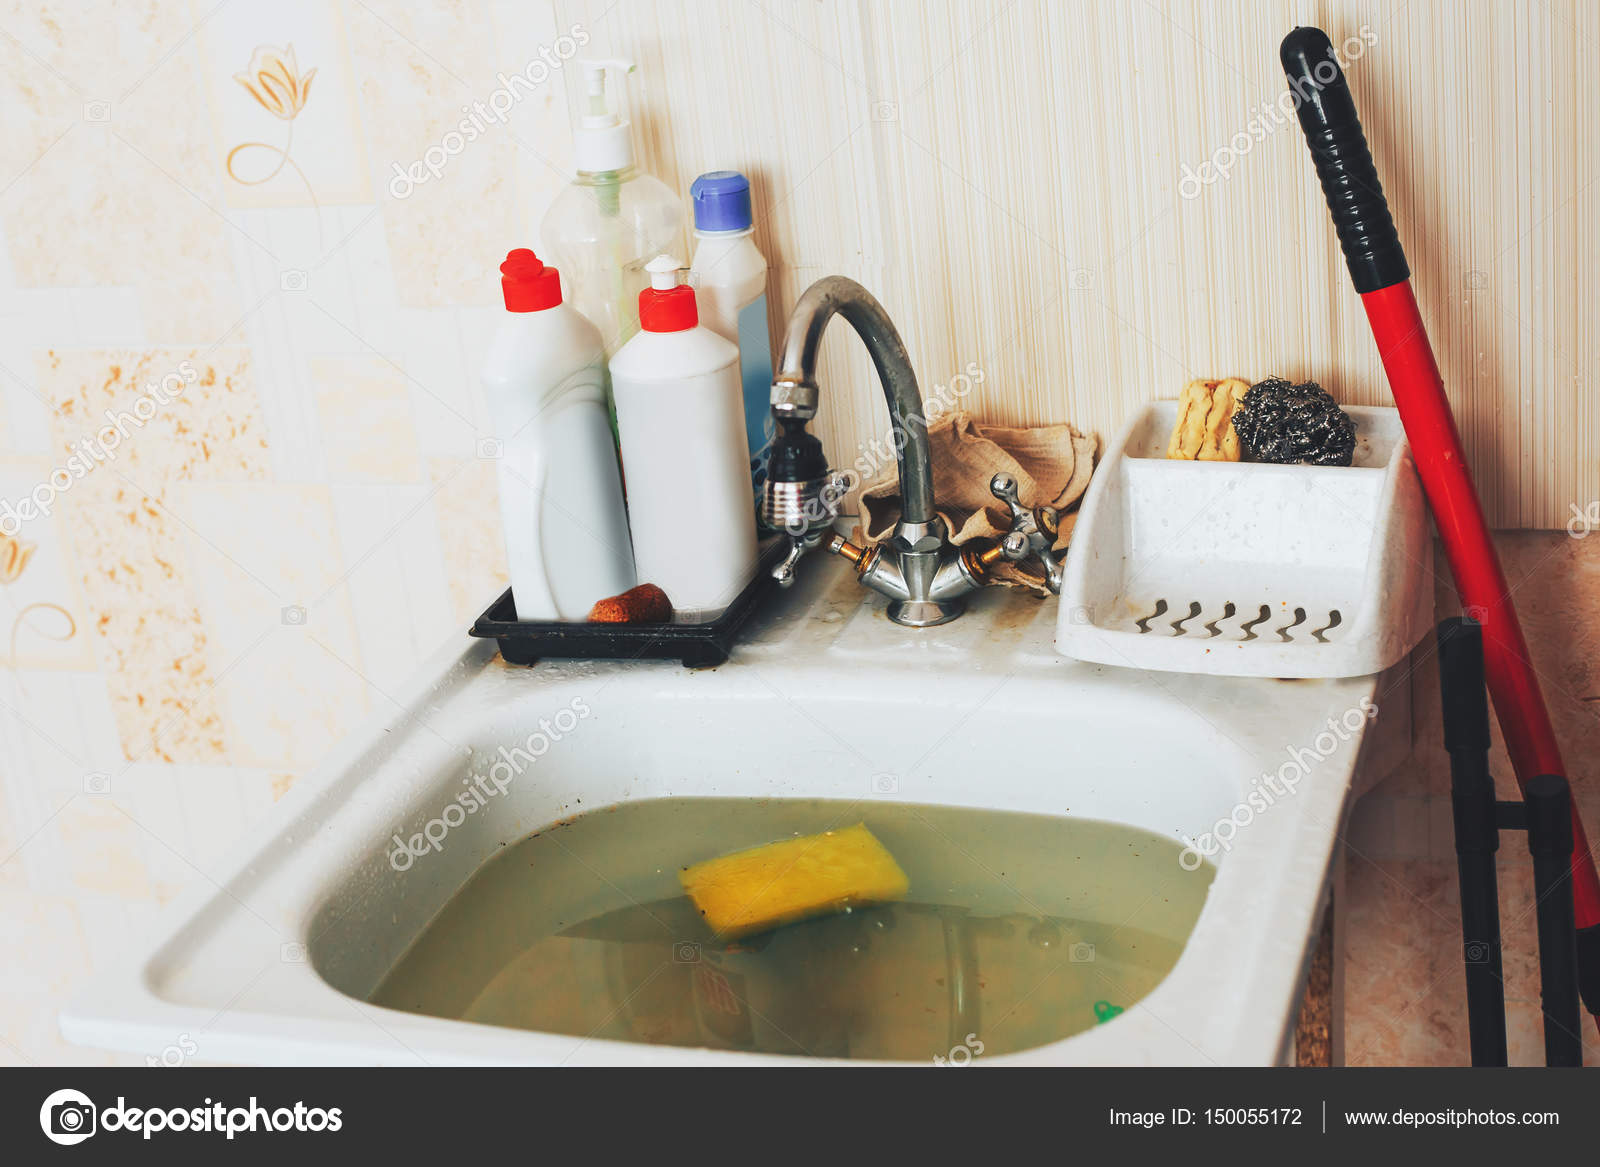 Clog In Kitchen Sink Obstruction Of Water Clog Pipes Stock Photo - Clogged pipes in bathroom